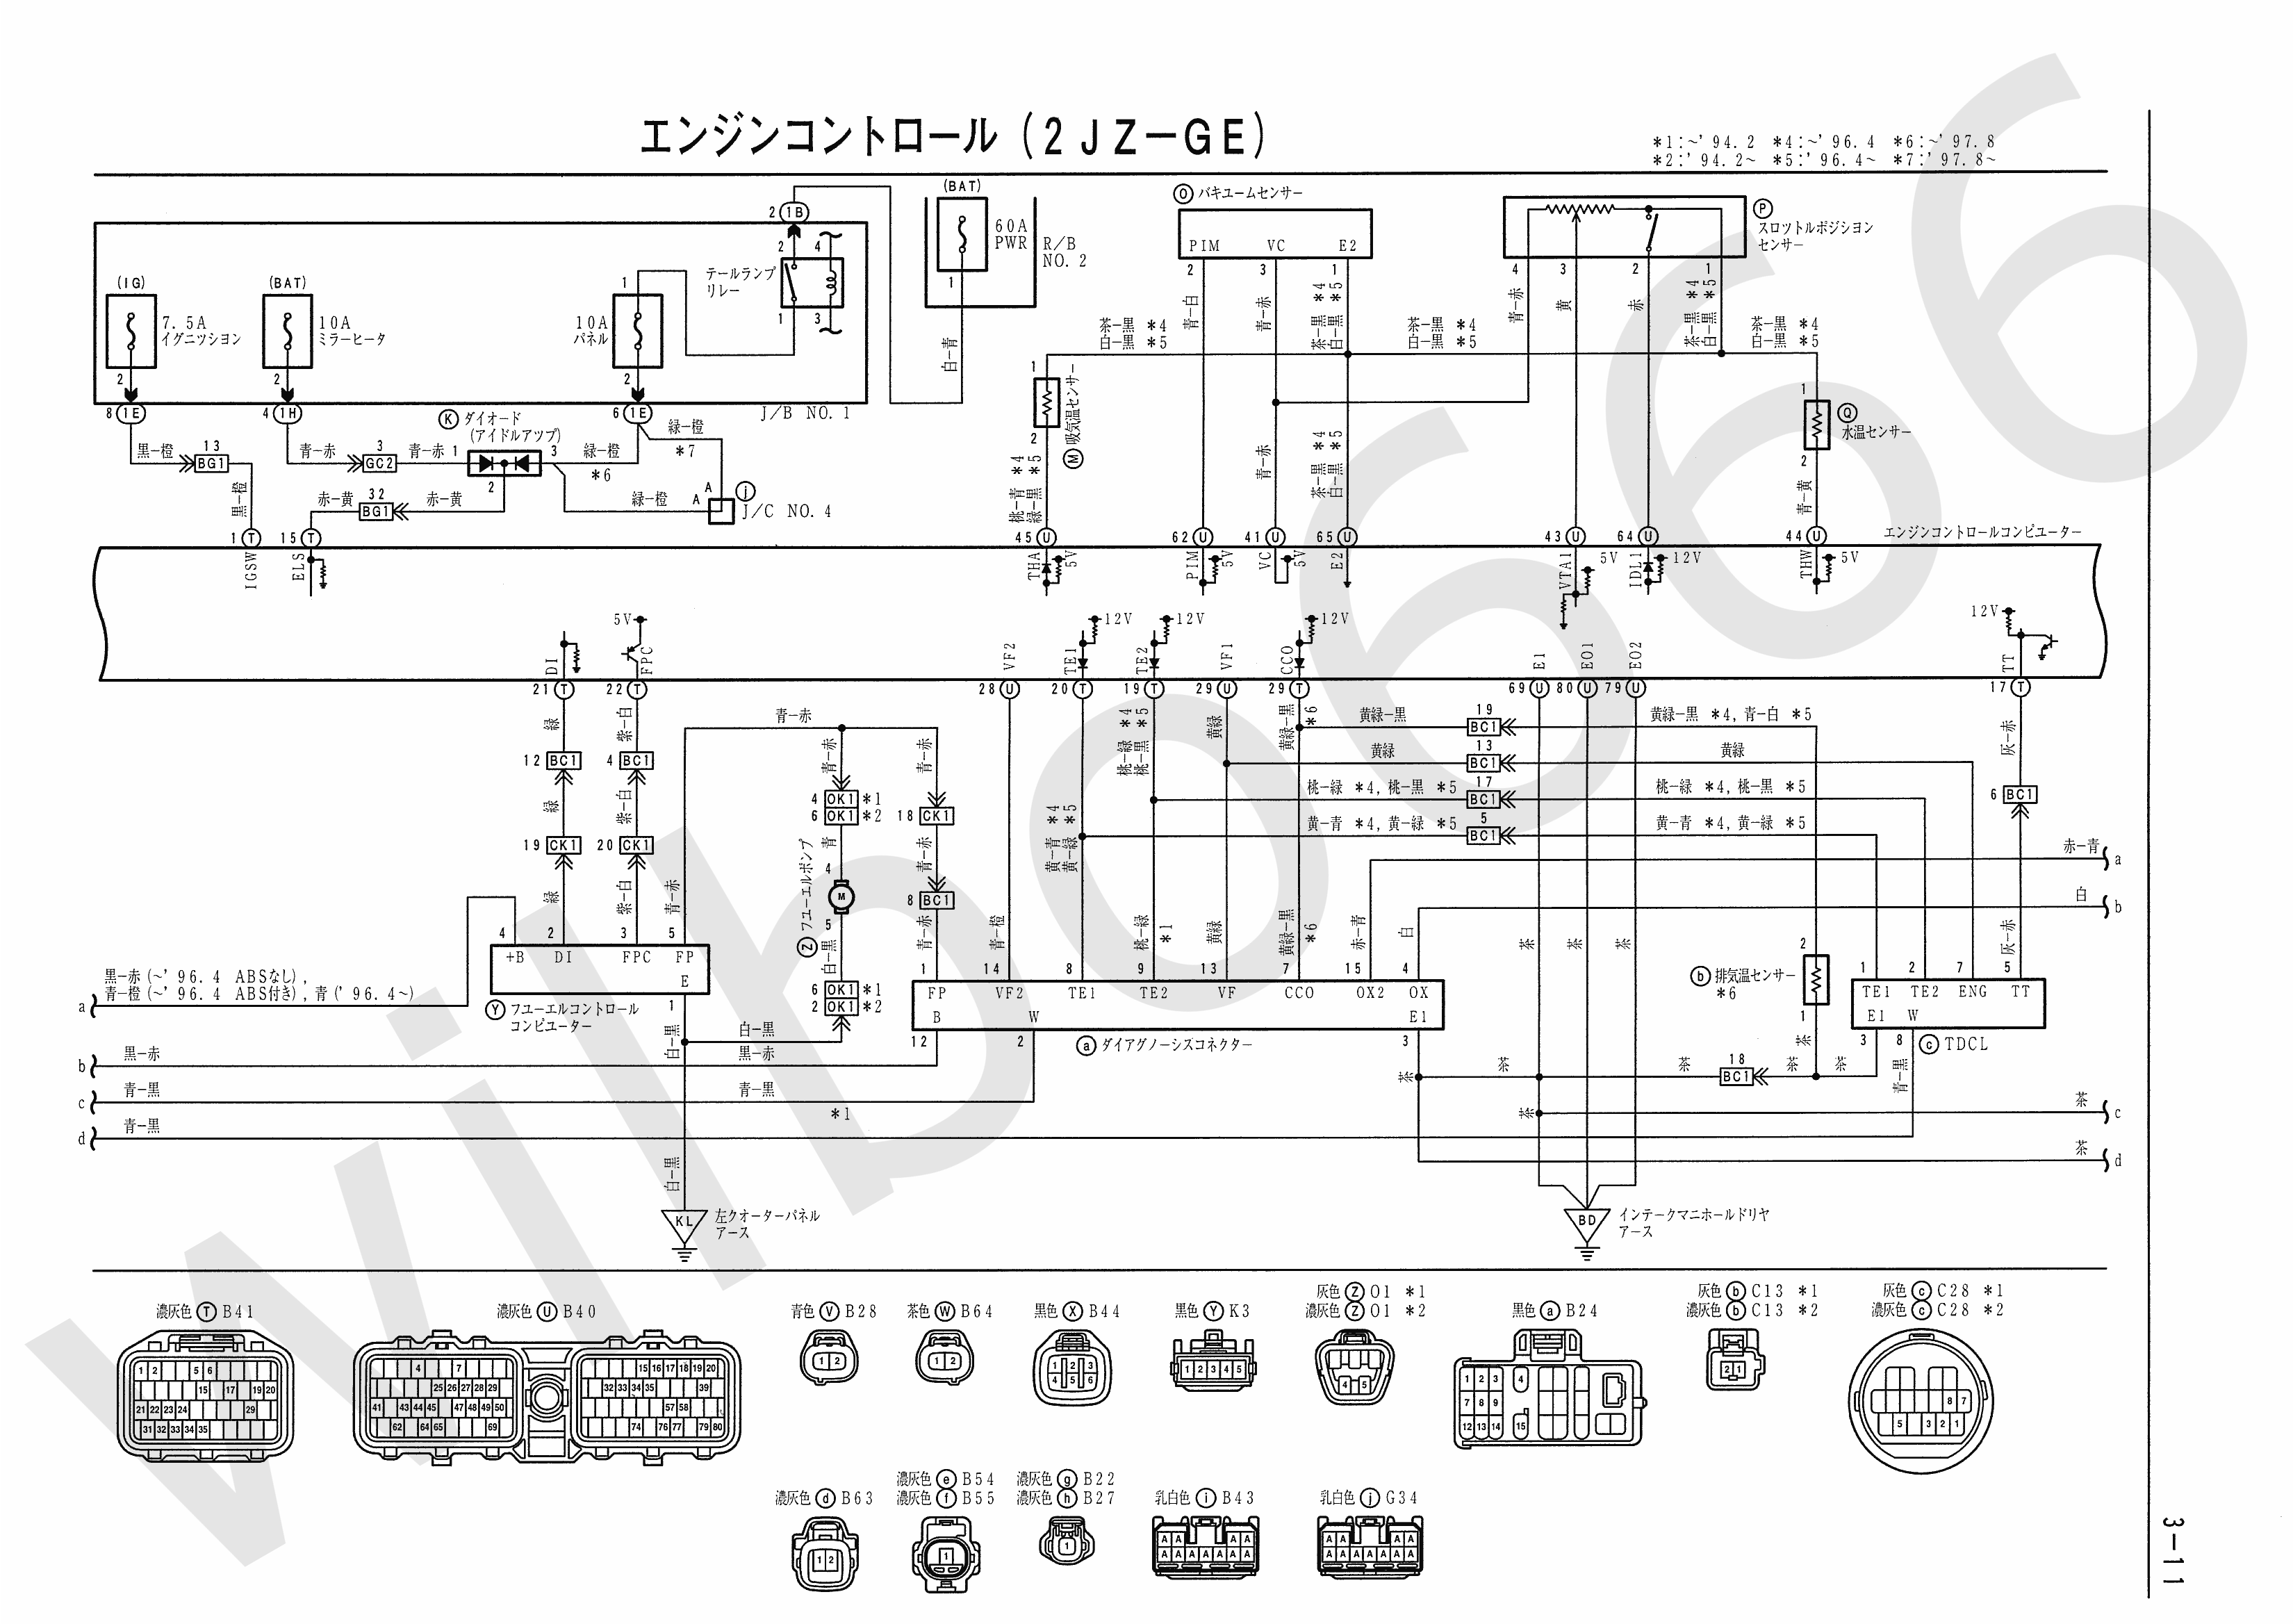 JZA80 Electrical Wiring Diagram 6742505 3 11 wilbo666 2jz ge jza80 supra engine wiring electrical wiring diagram books at virtualis.co